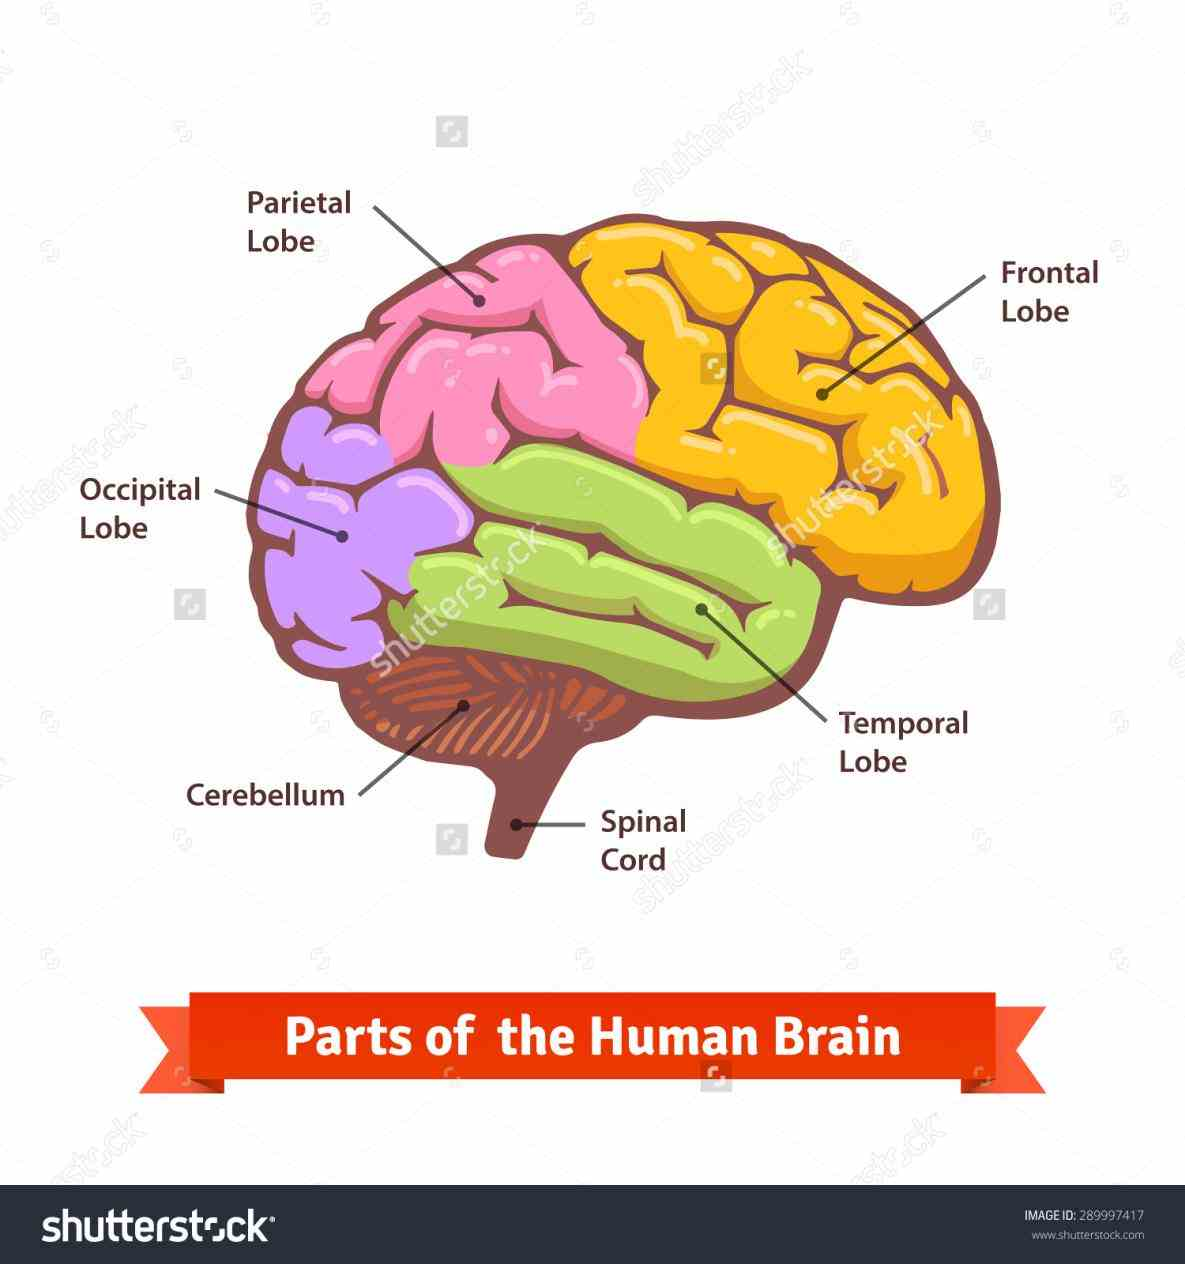 regions first lets define the  can Labeled Areas Of The Brain you name parts of the brain test your